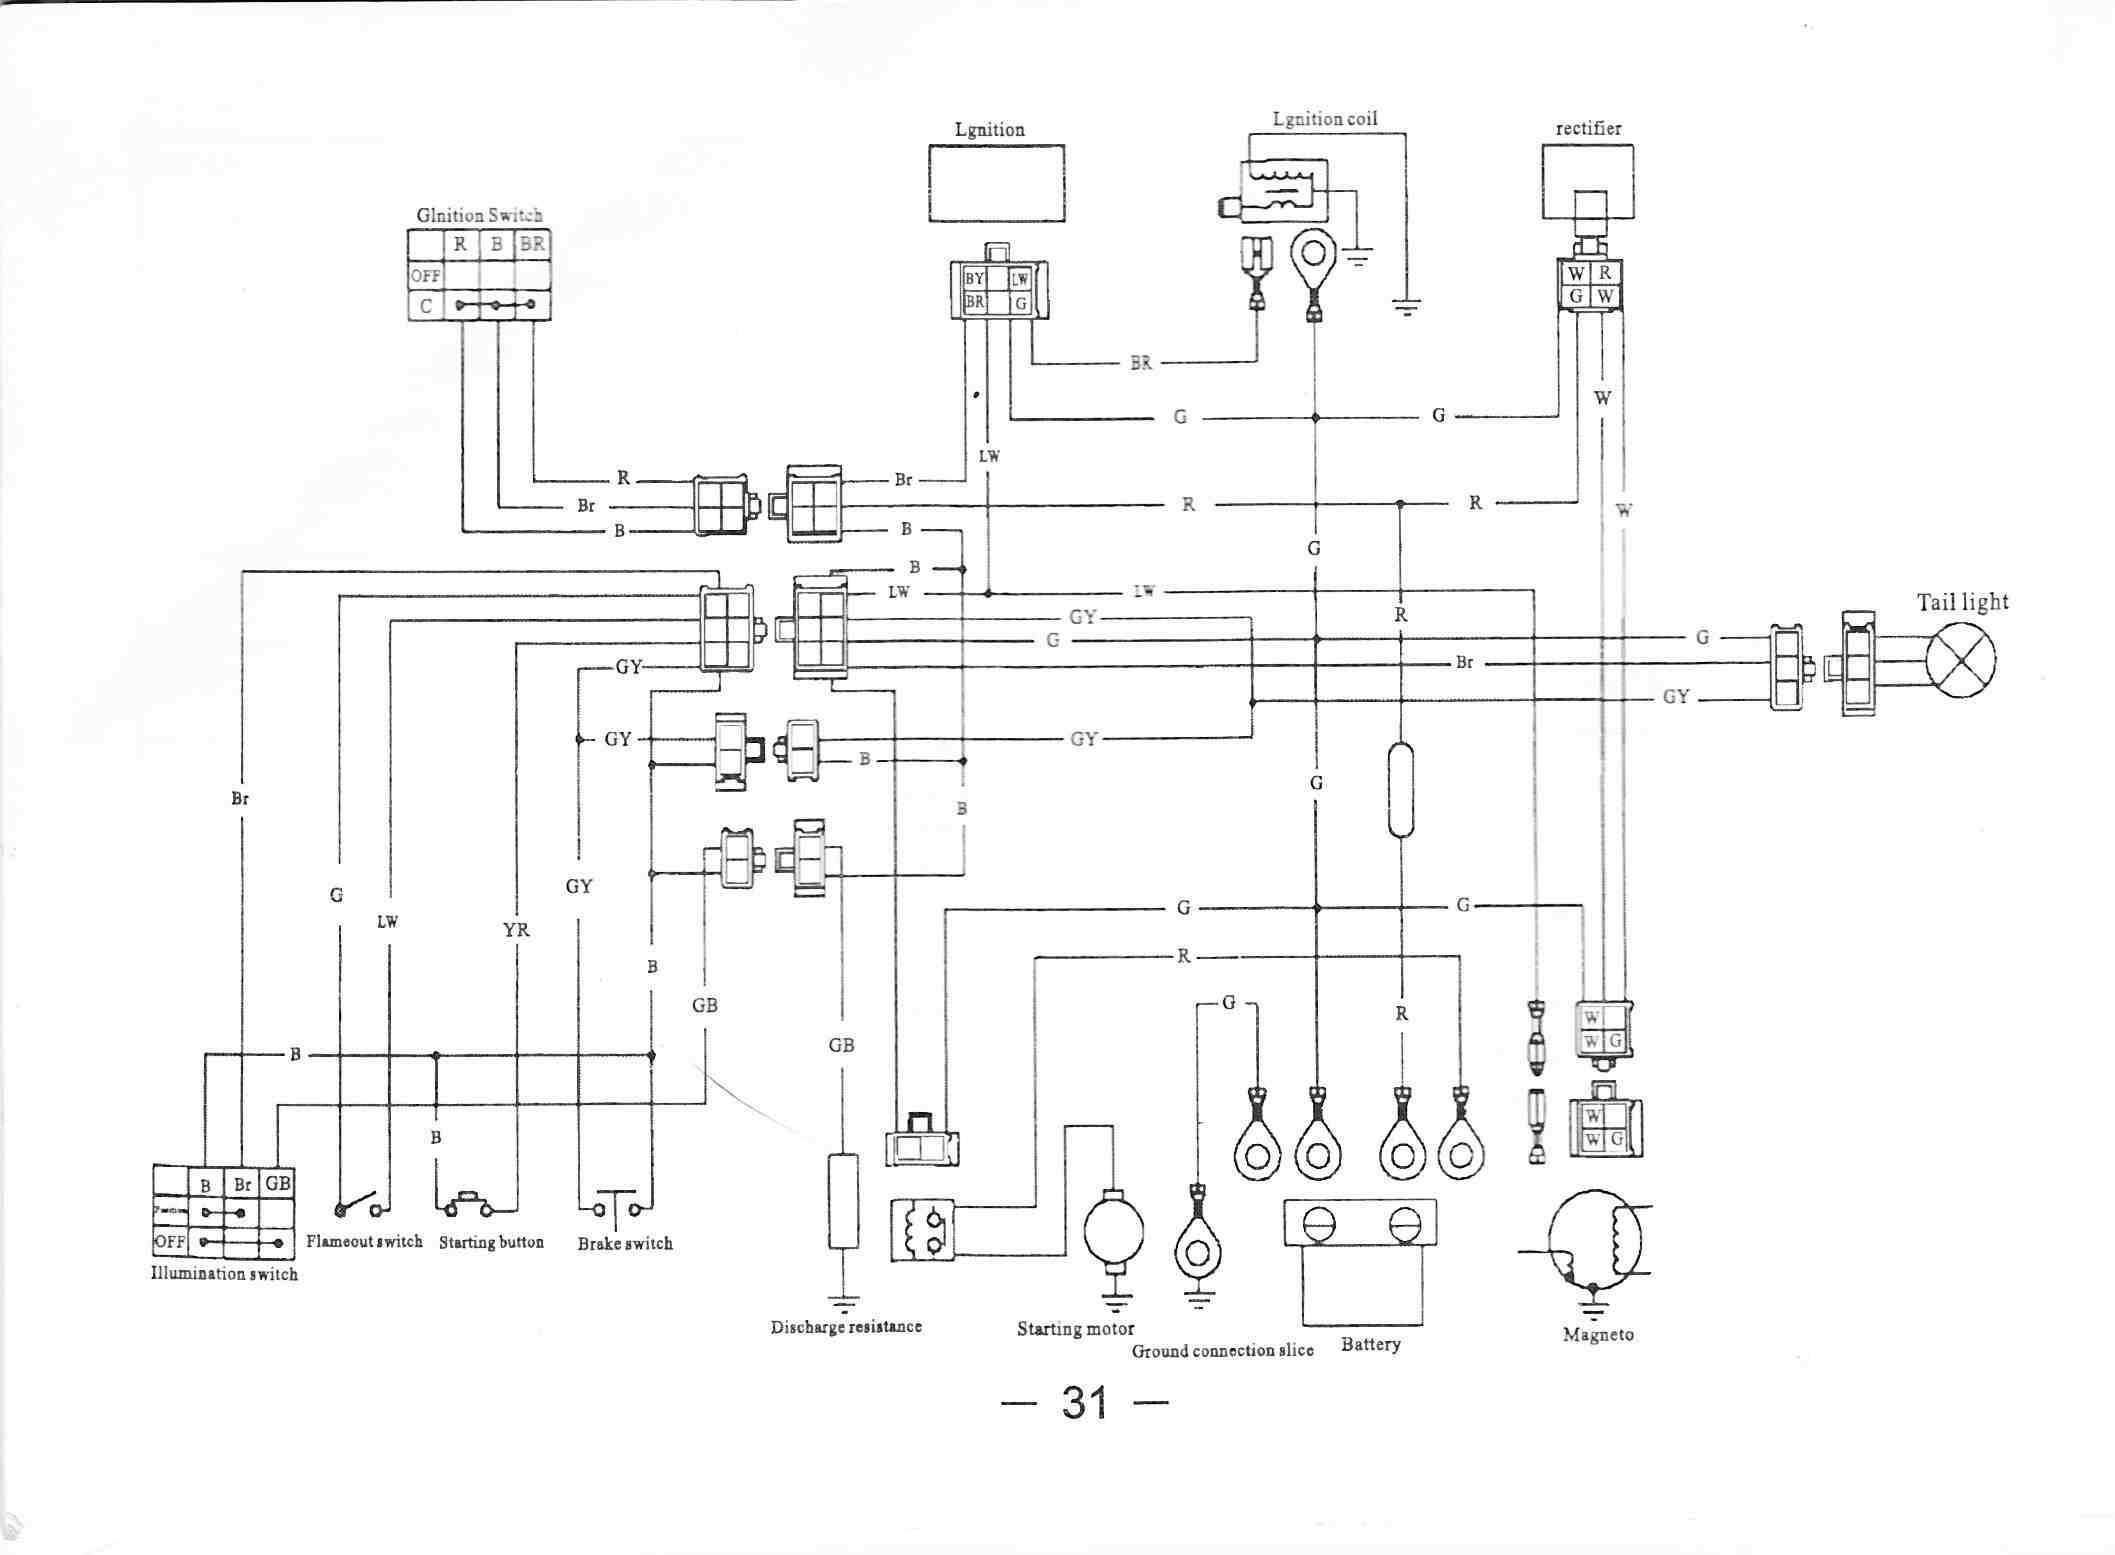 110 Atv Wiring Harness Free Download Diagram Schematic ... Wiring Diagram Free Download on